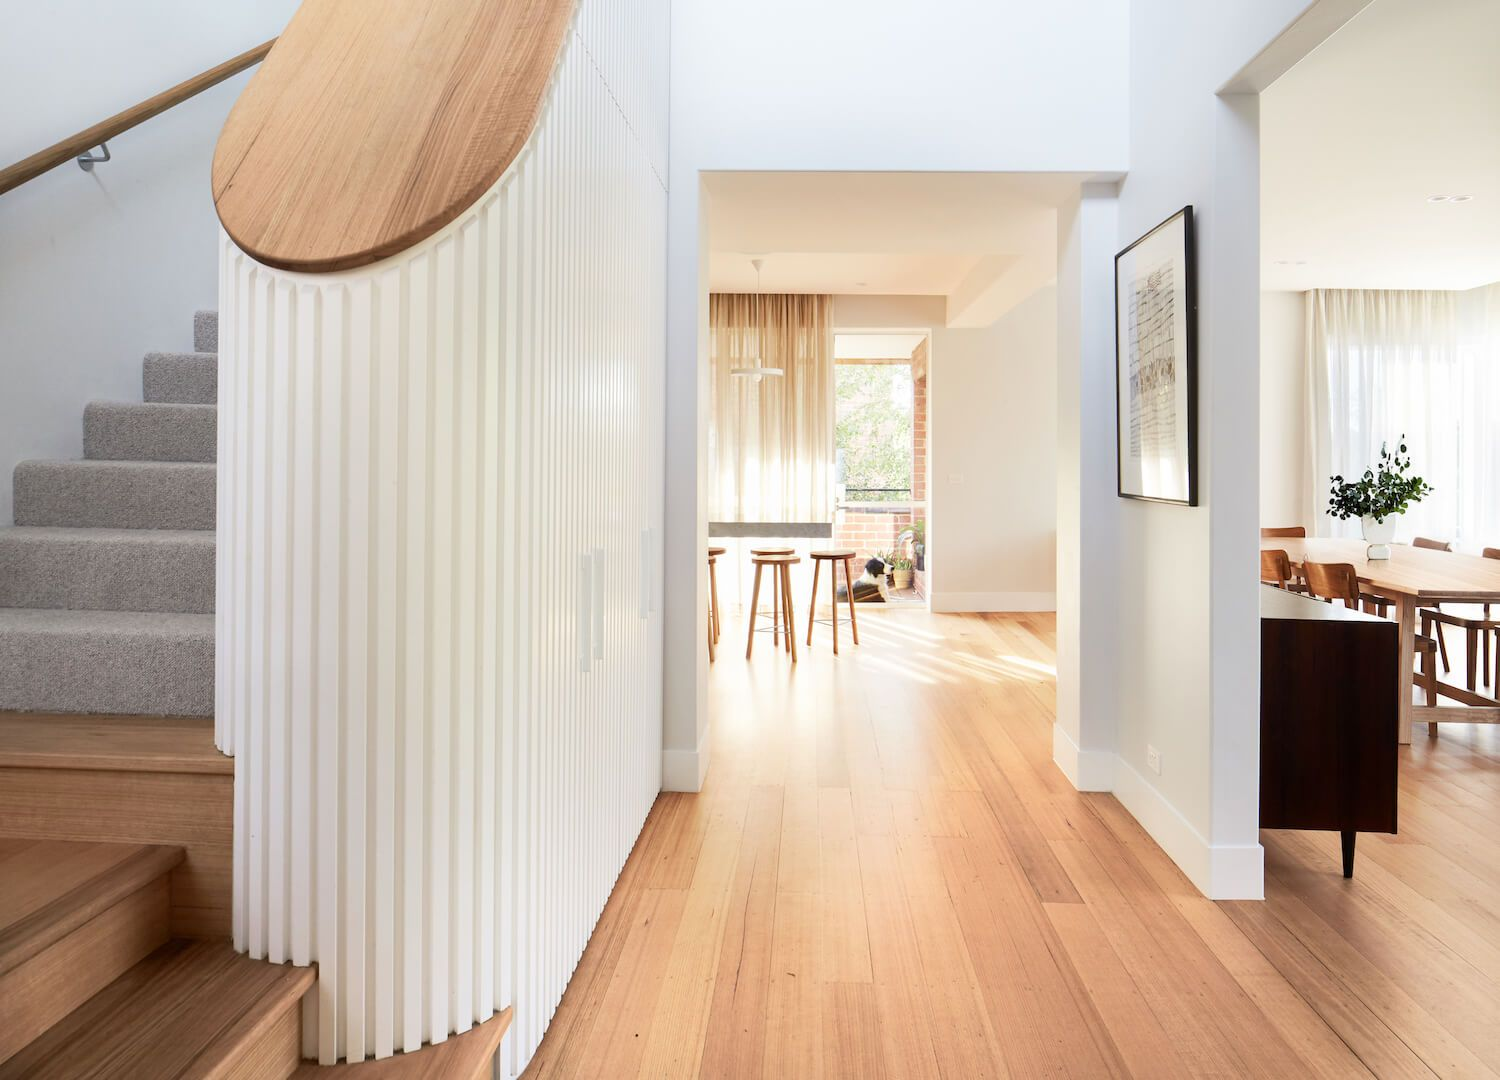 Stairs holroyd house by foomann architects est living